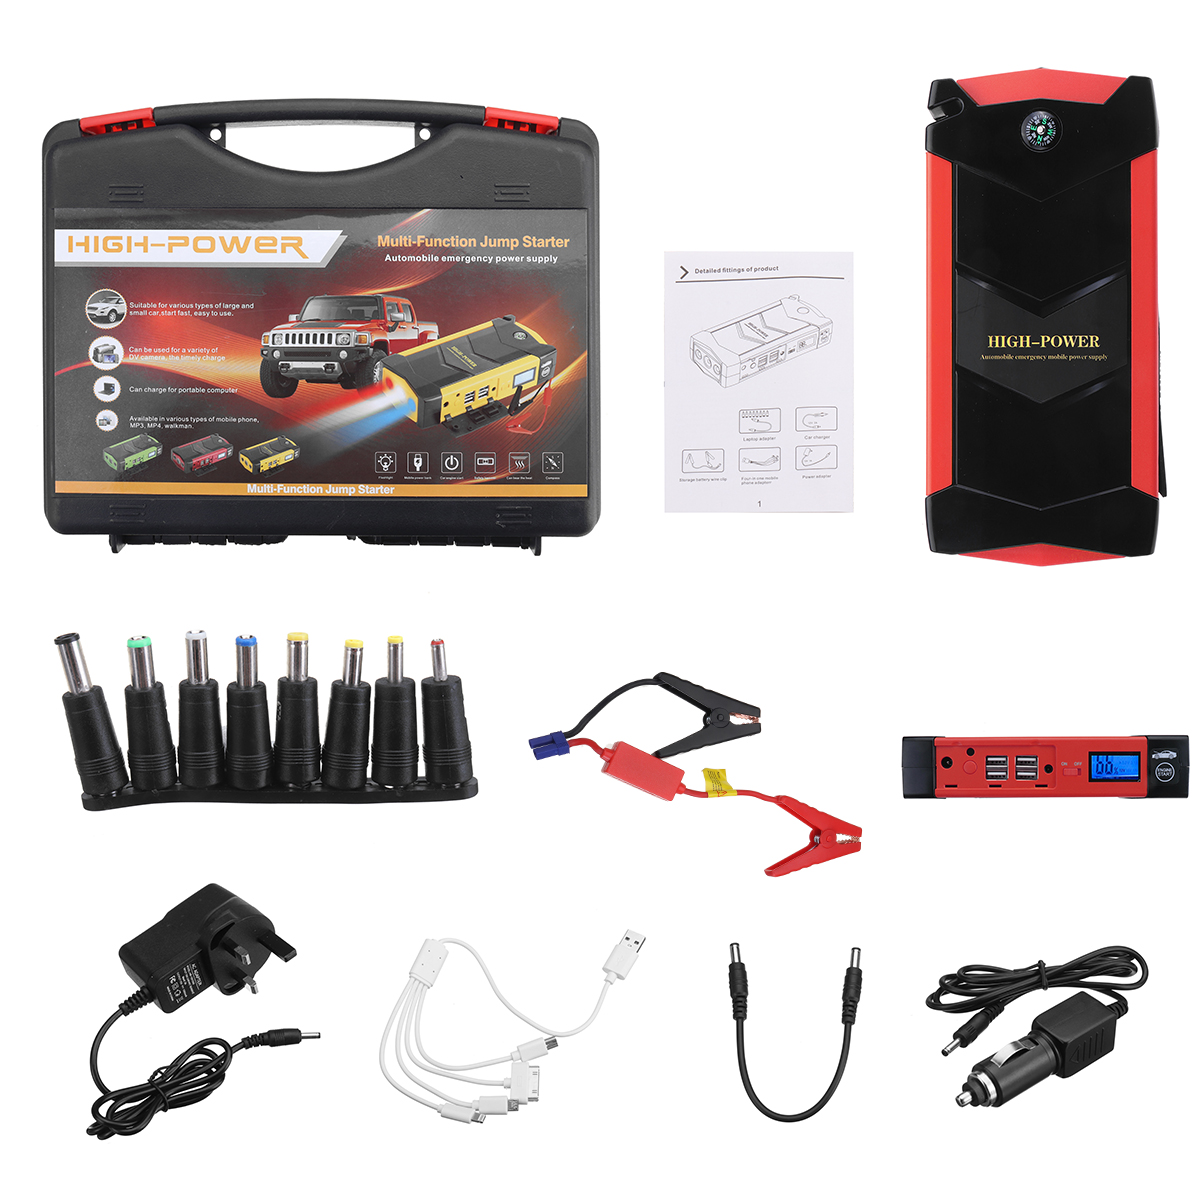 12V 82800mAh Car Jump Starter Booster Power Bank 4USB Car Battery Charger Starting Tool Kit For Car Starting Device выставка munk 2019 06 16t16 30